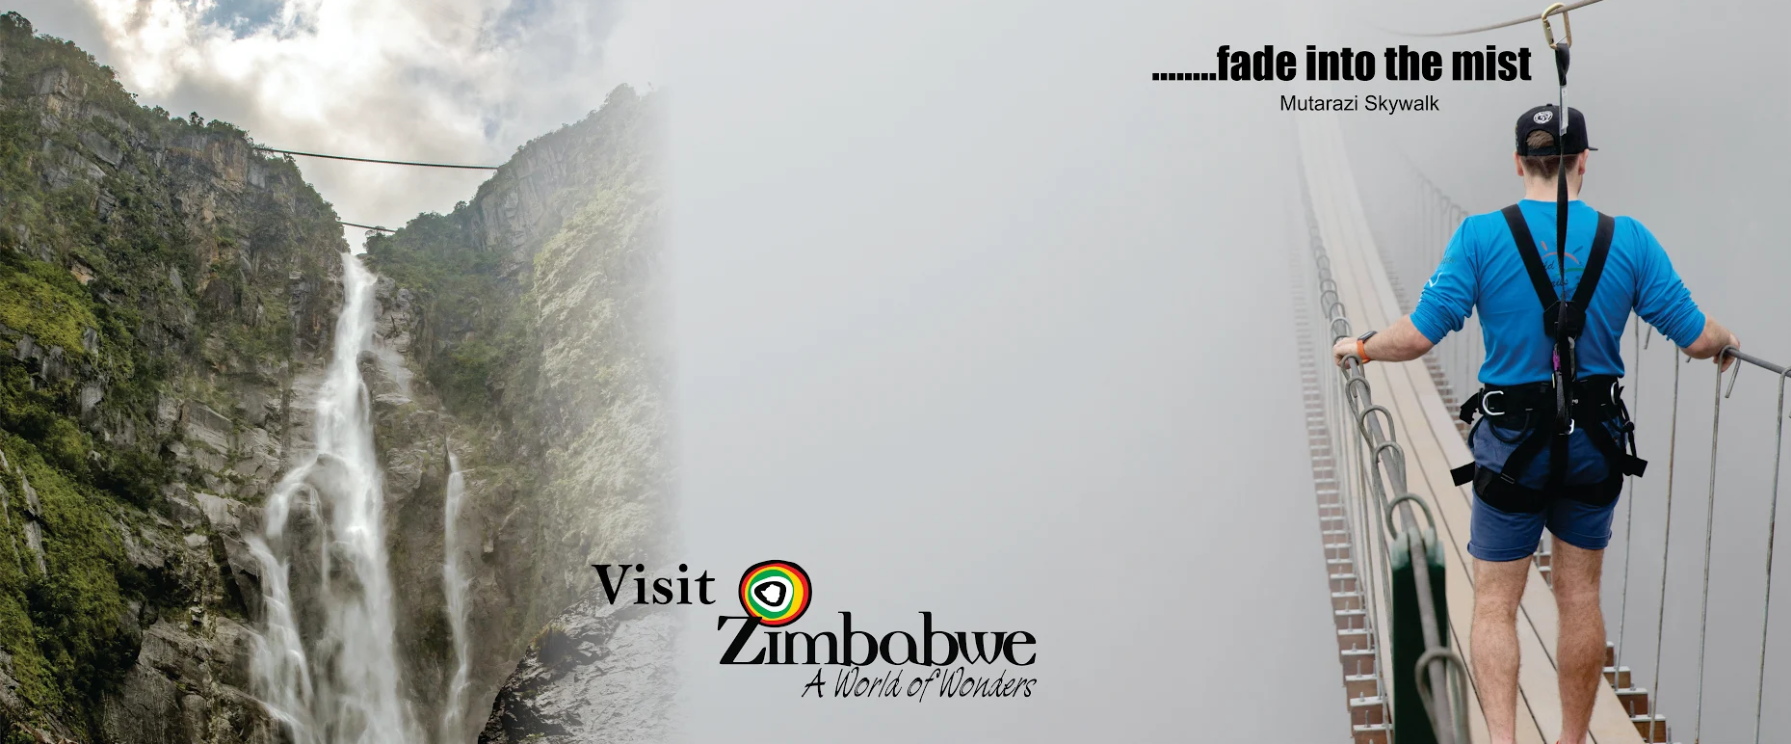 Welcome back to Zimbabwe - A World of Wonders